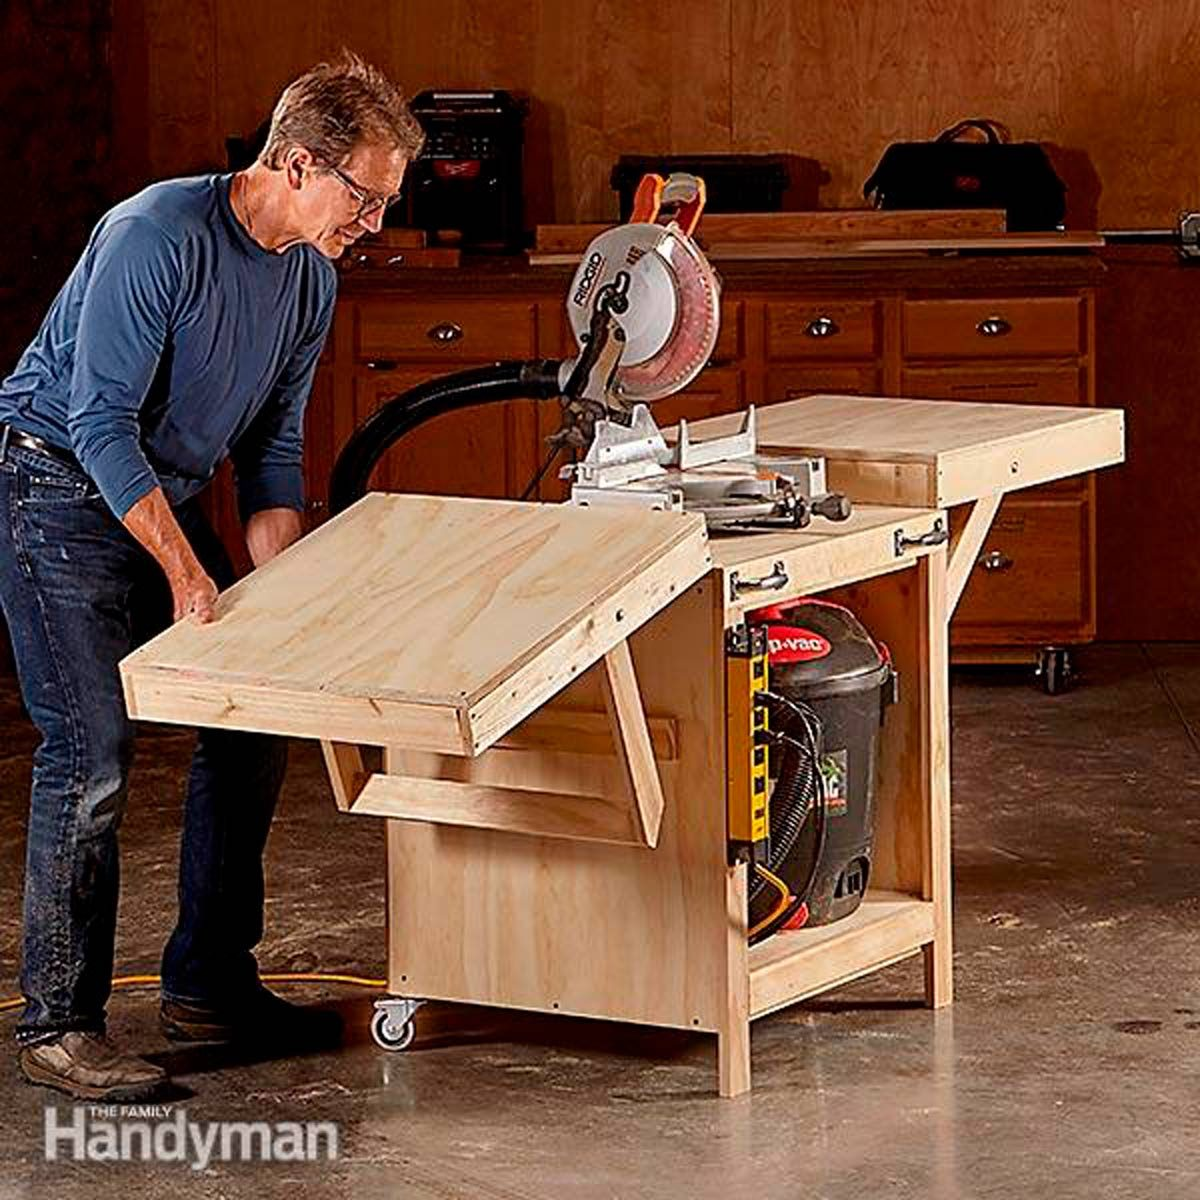 A huge work surface when you need it, compact storage when you don't